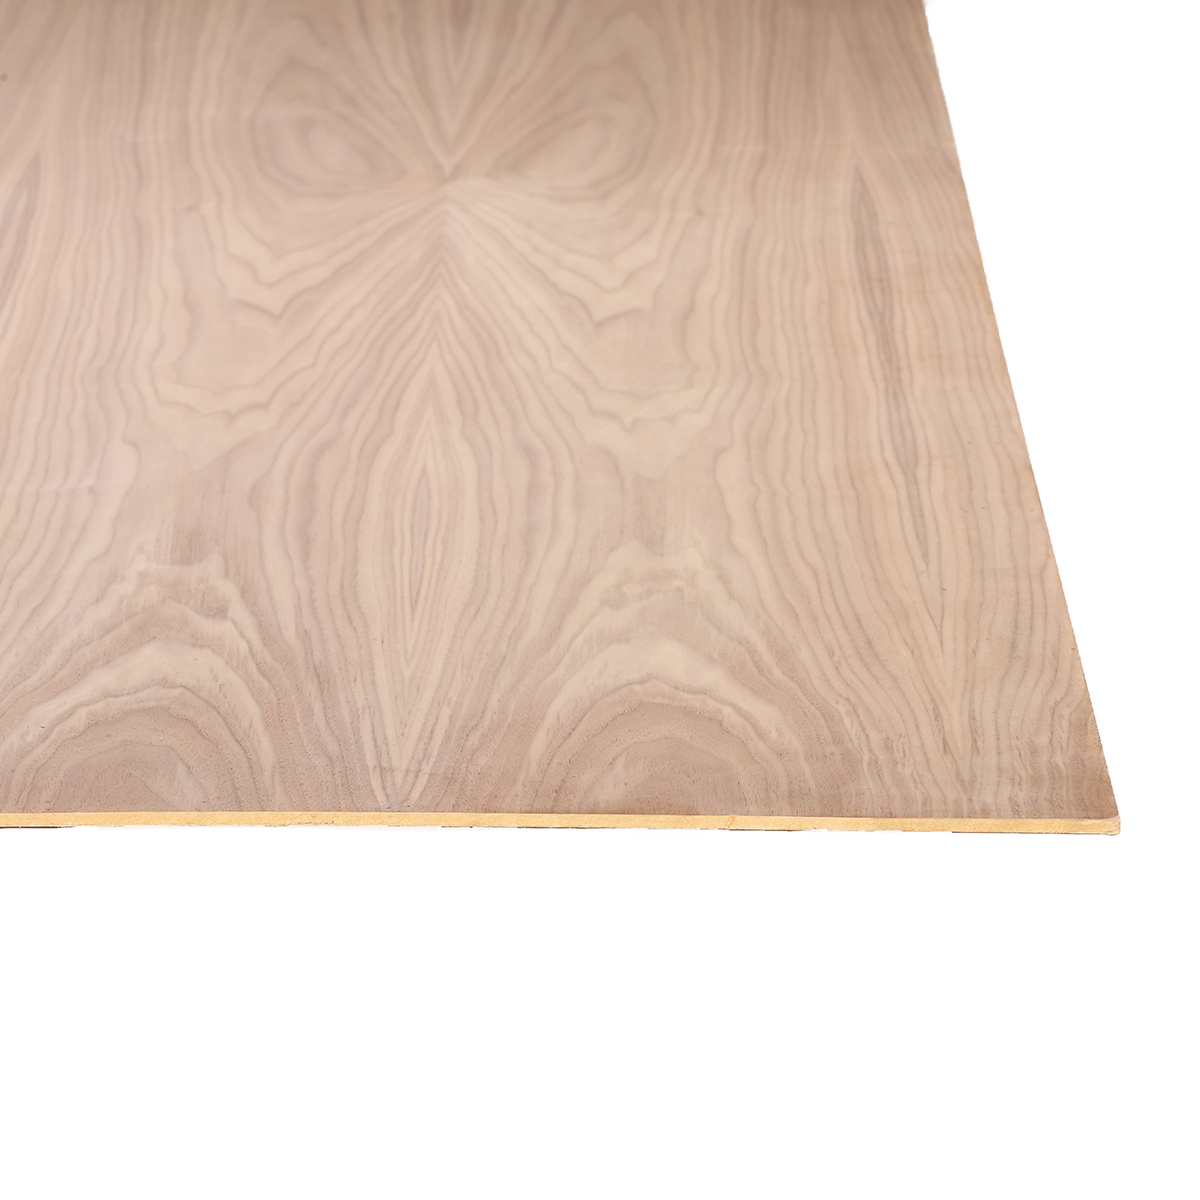 Where To Buy Cabinet Grade Plywood